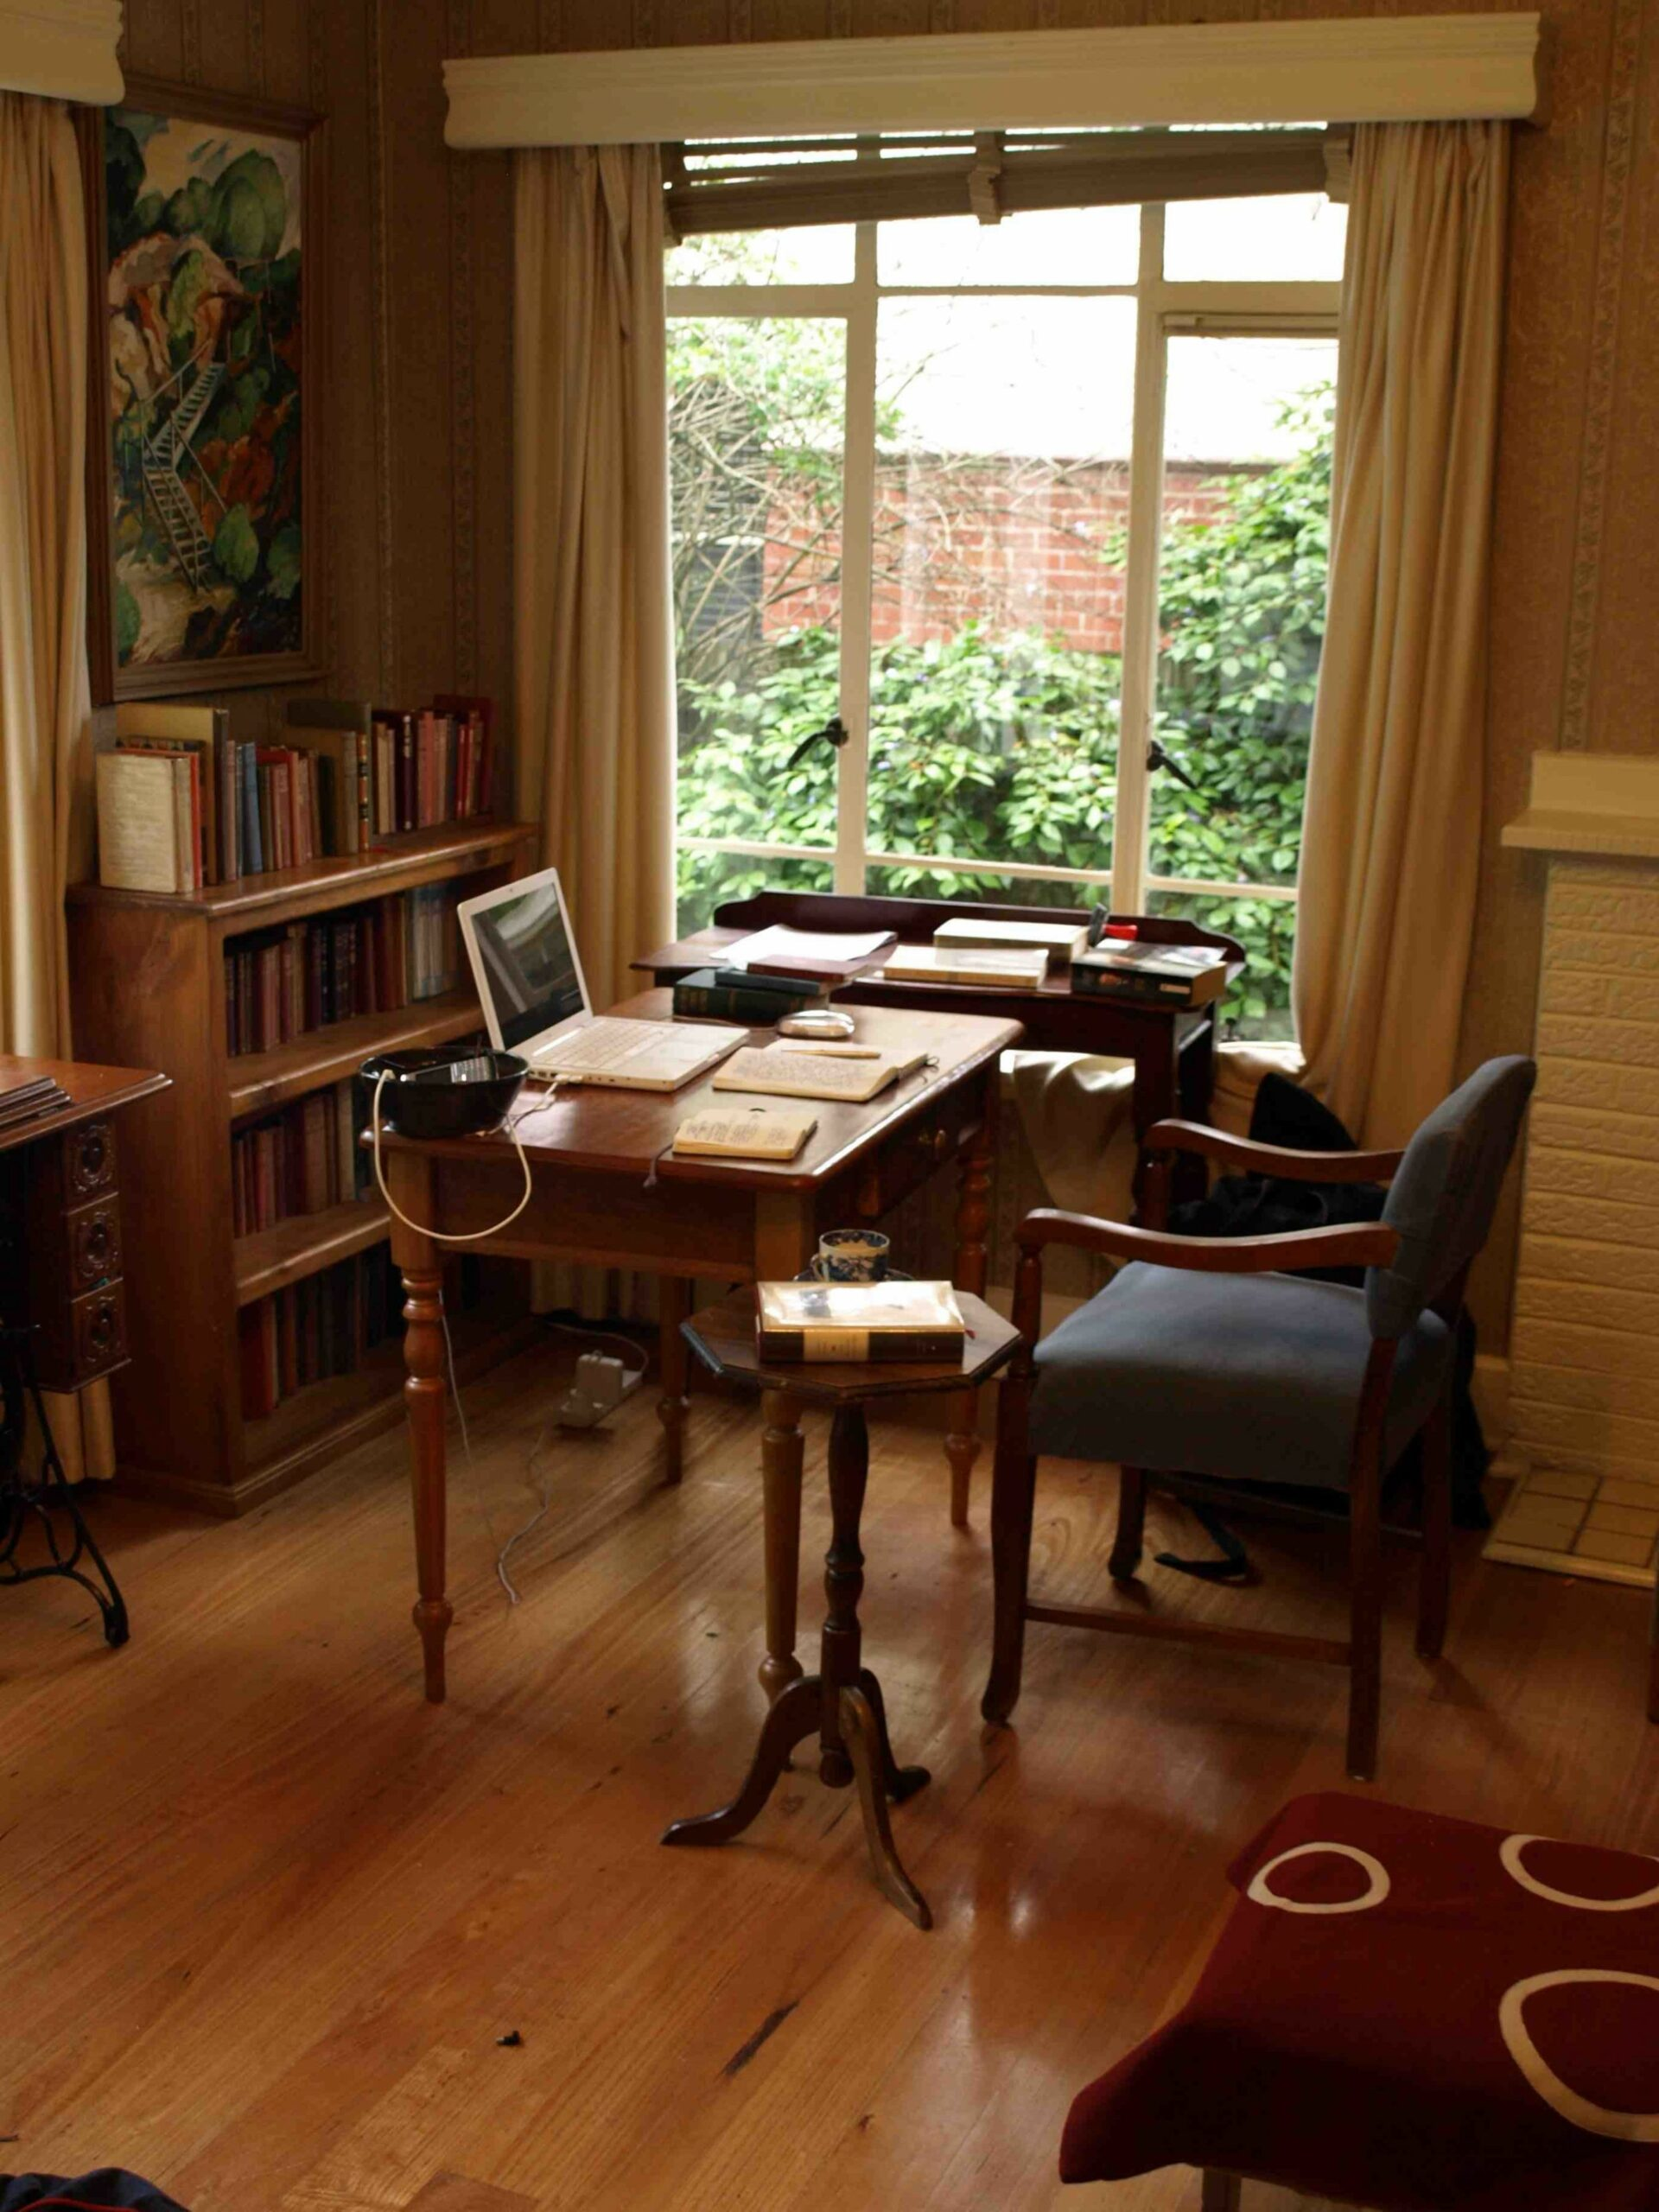 amandaonwriting: A Writer's Room - Damon Young | Home office ...